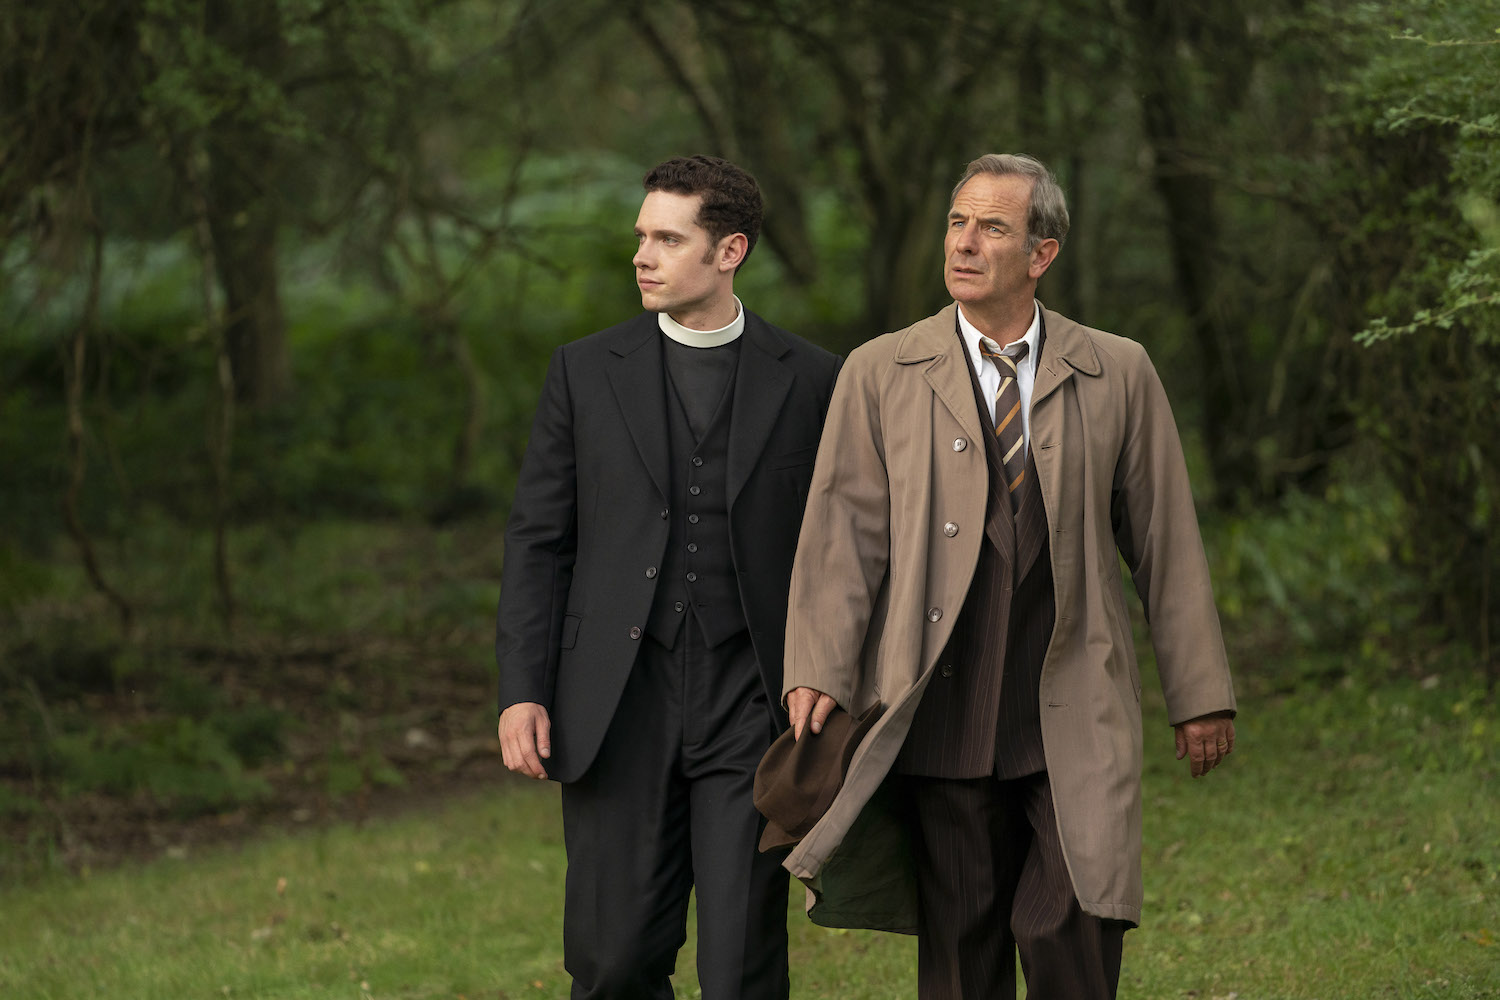 Tom Brittney as Will Davenport, wearing priest's collar, and Robson Green as Geordie Keating, wearing tan jacket, in 'Grantchester'